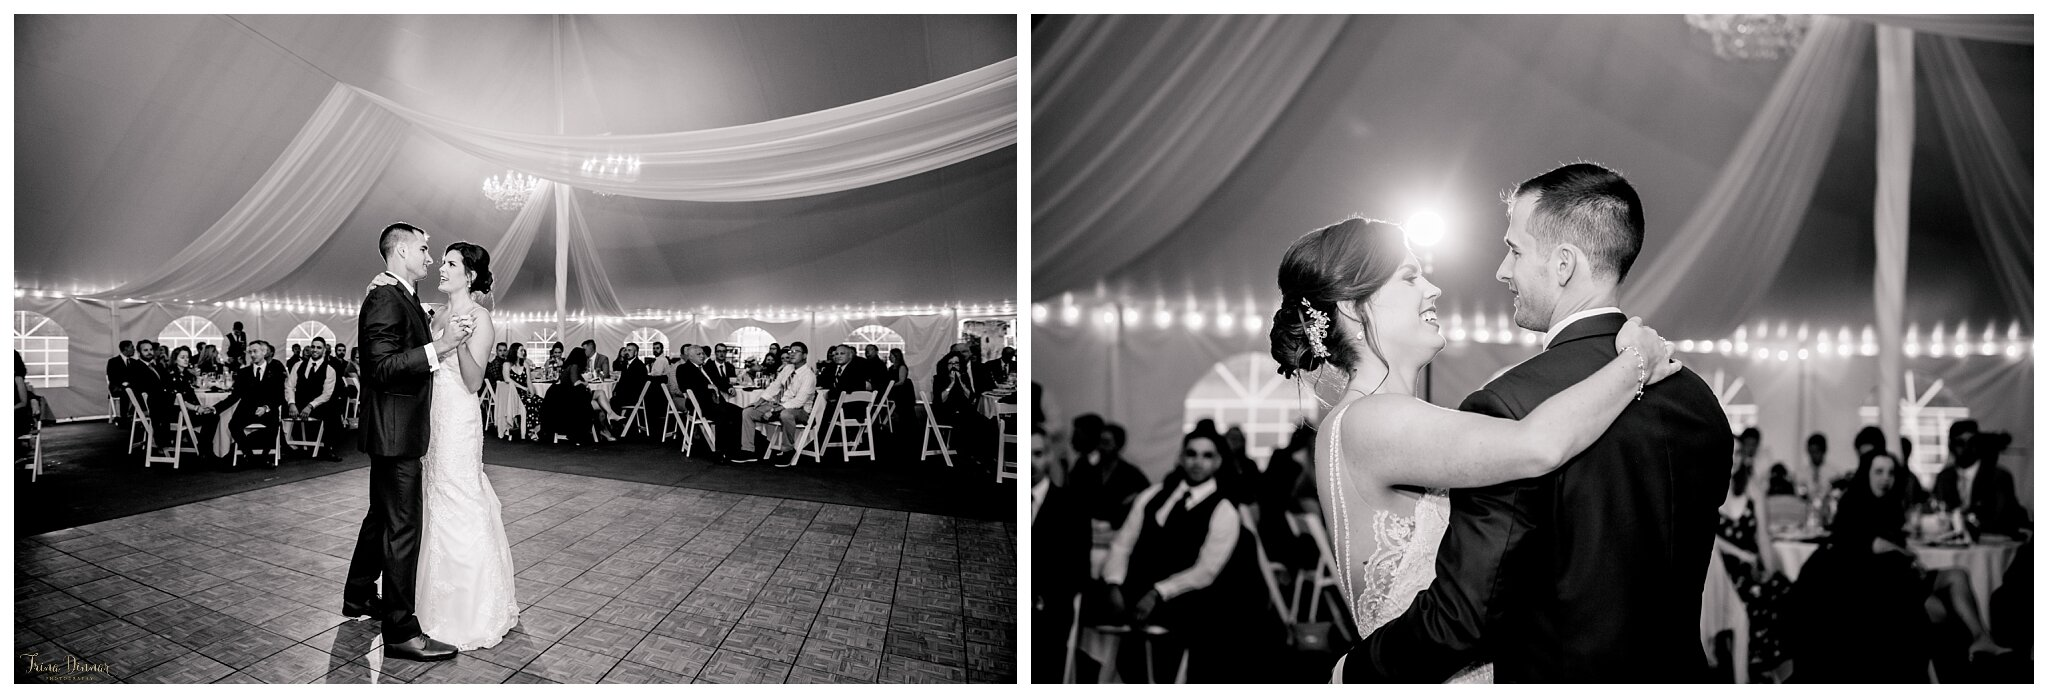 First Dance during a Falmouth Country Club Wedding in Falmouth, Maine.